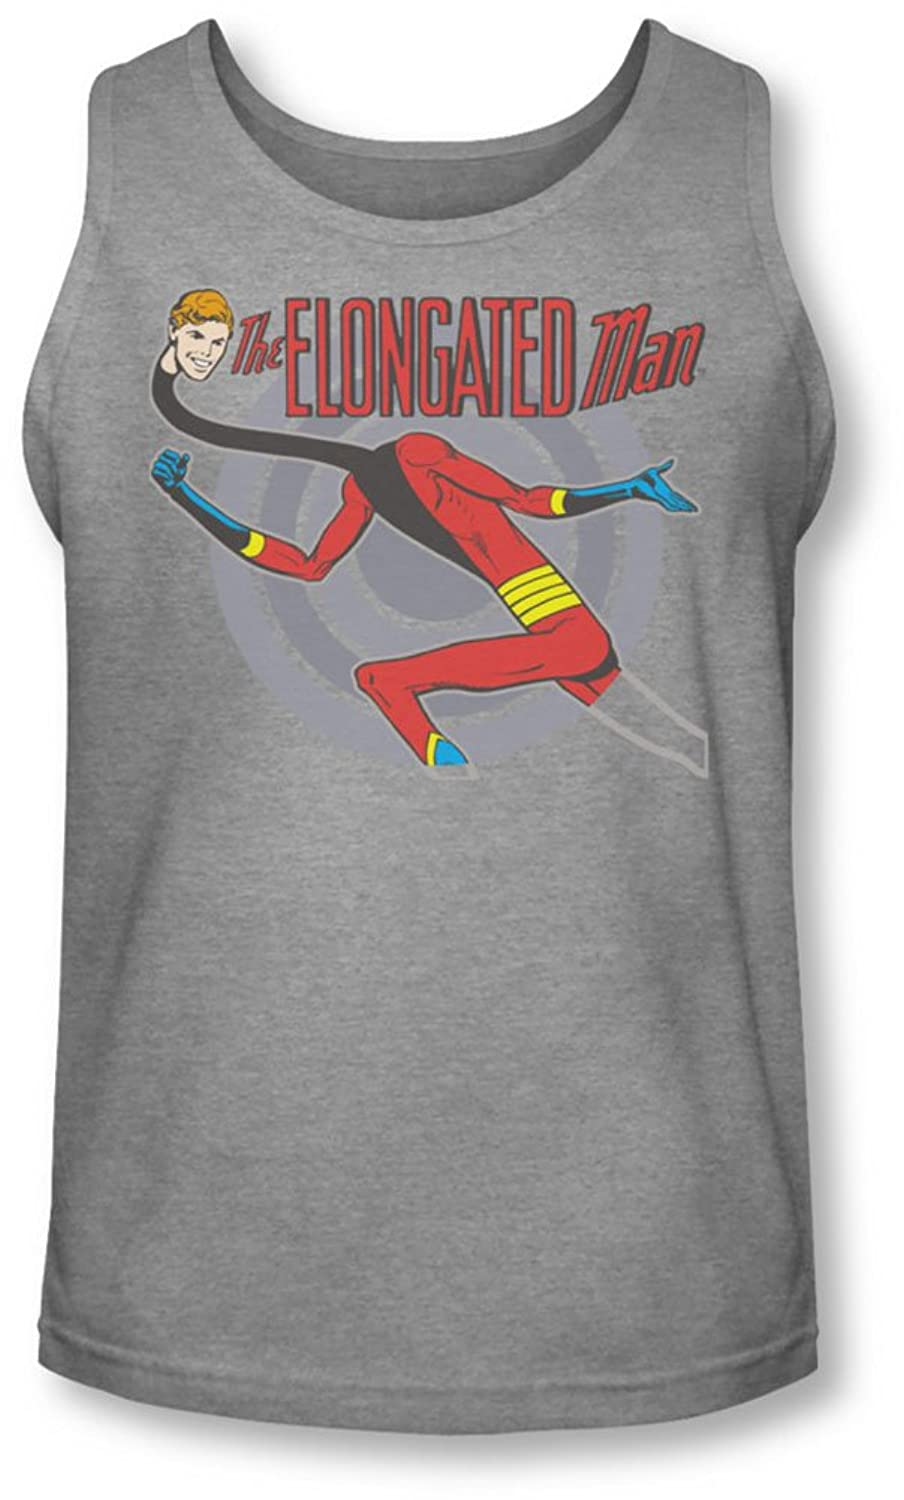 Dc - Mens Elongated Man Tank-Top